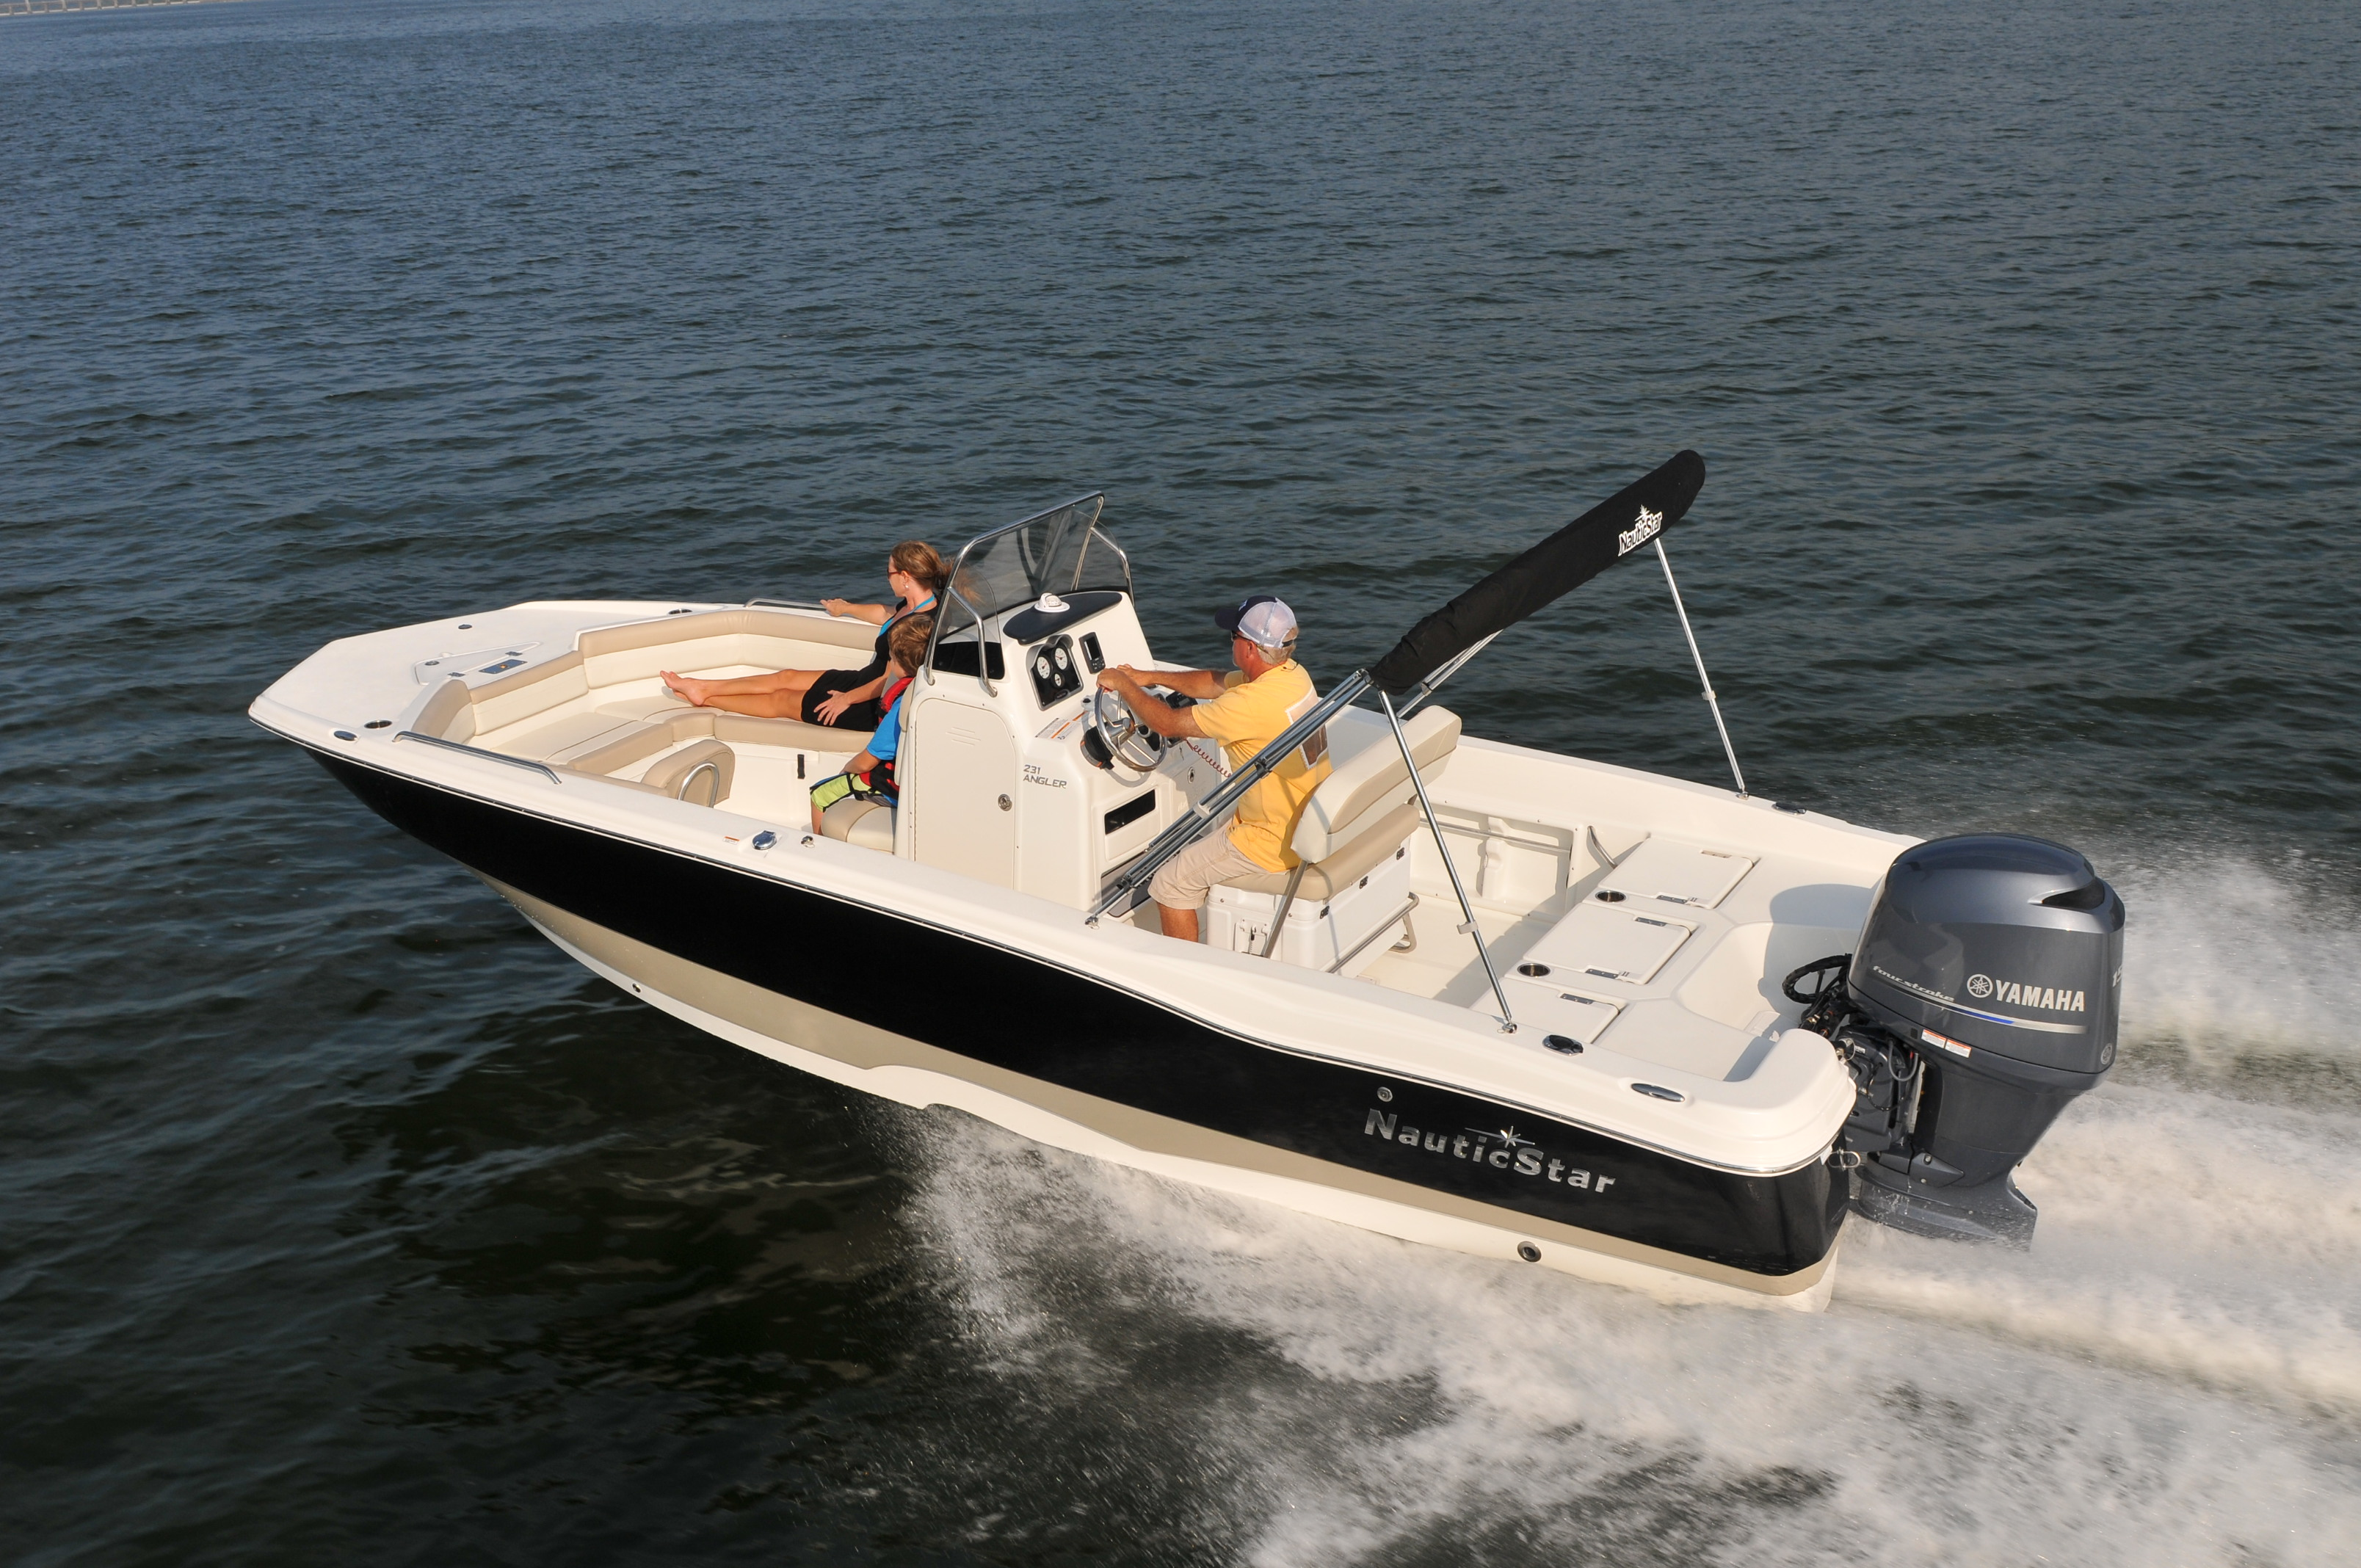 NauticStar 231 Series Merges Family Pleasure Boating with Serious ...